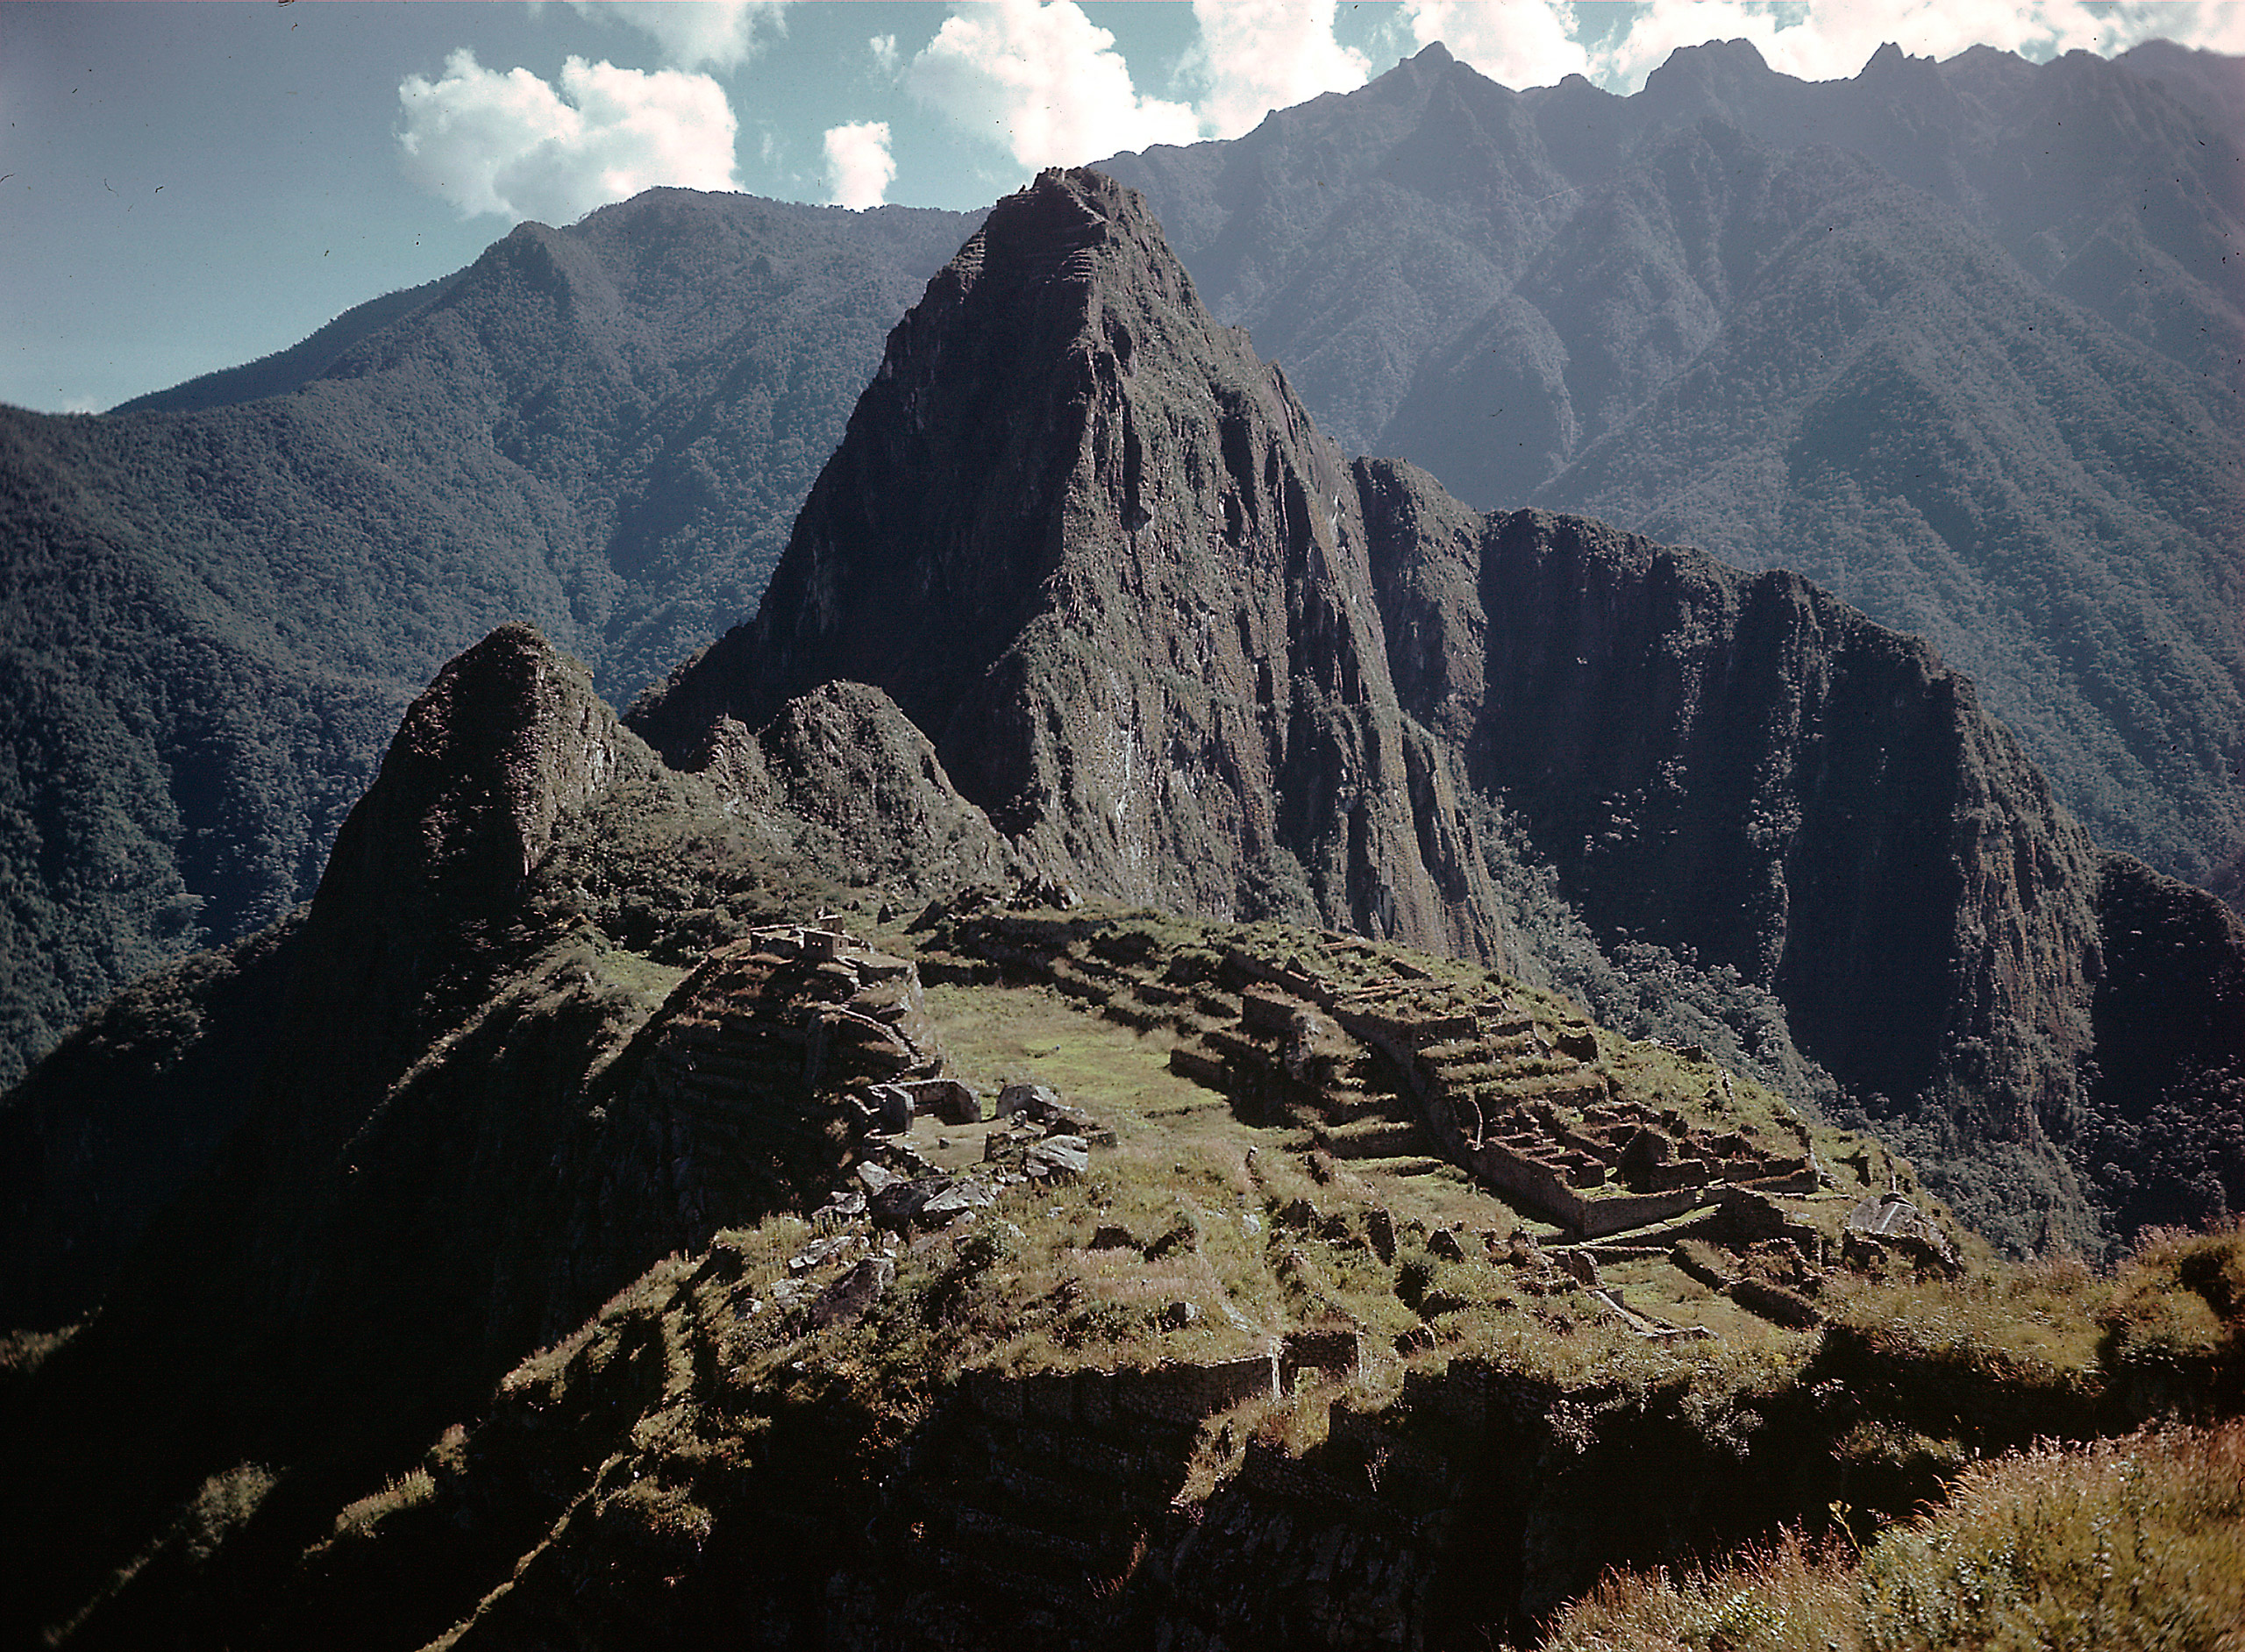 The Inca Ruins of Machu Picchu in Peru, 1945.